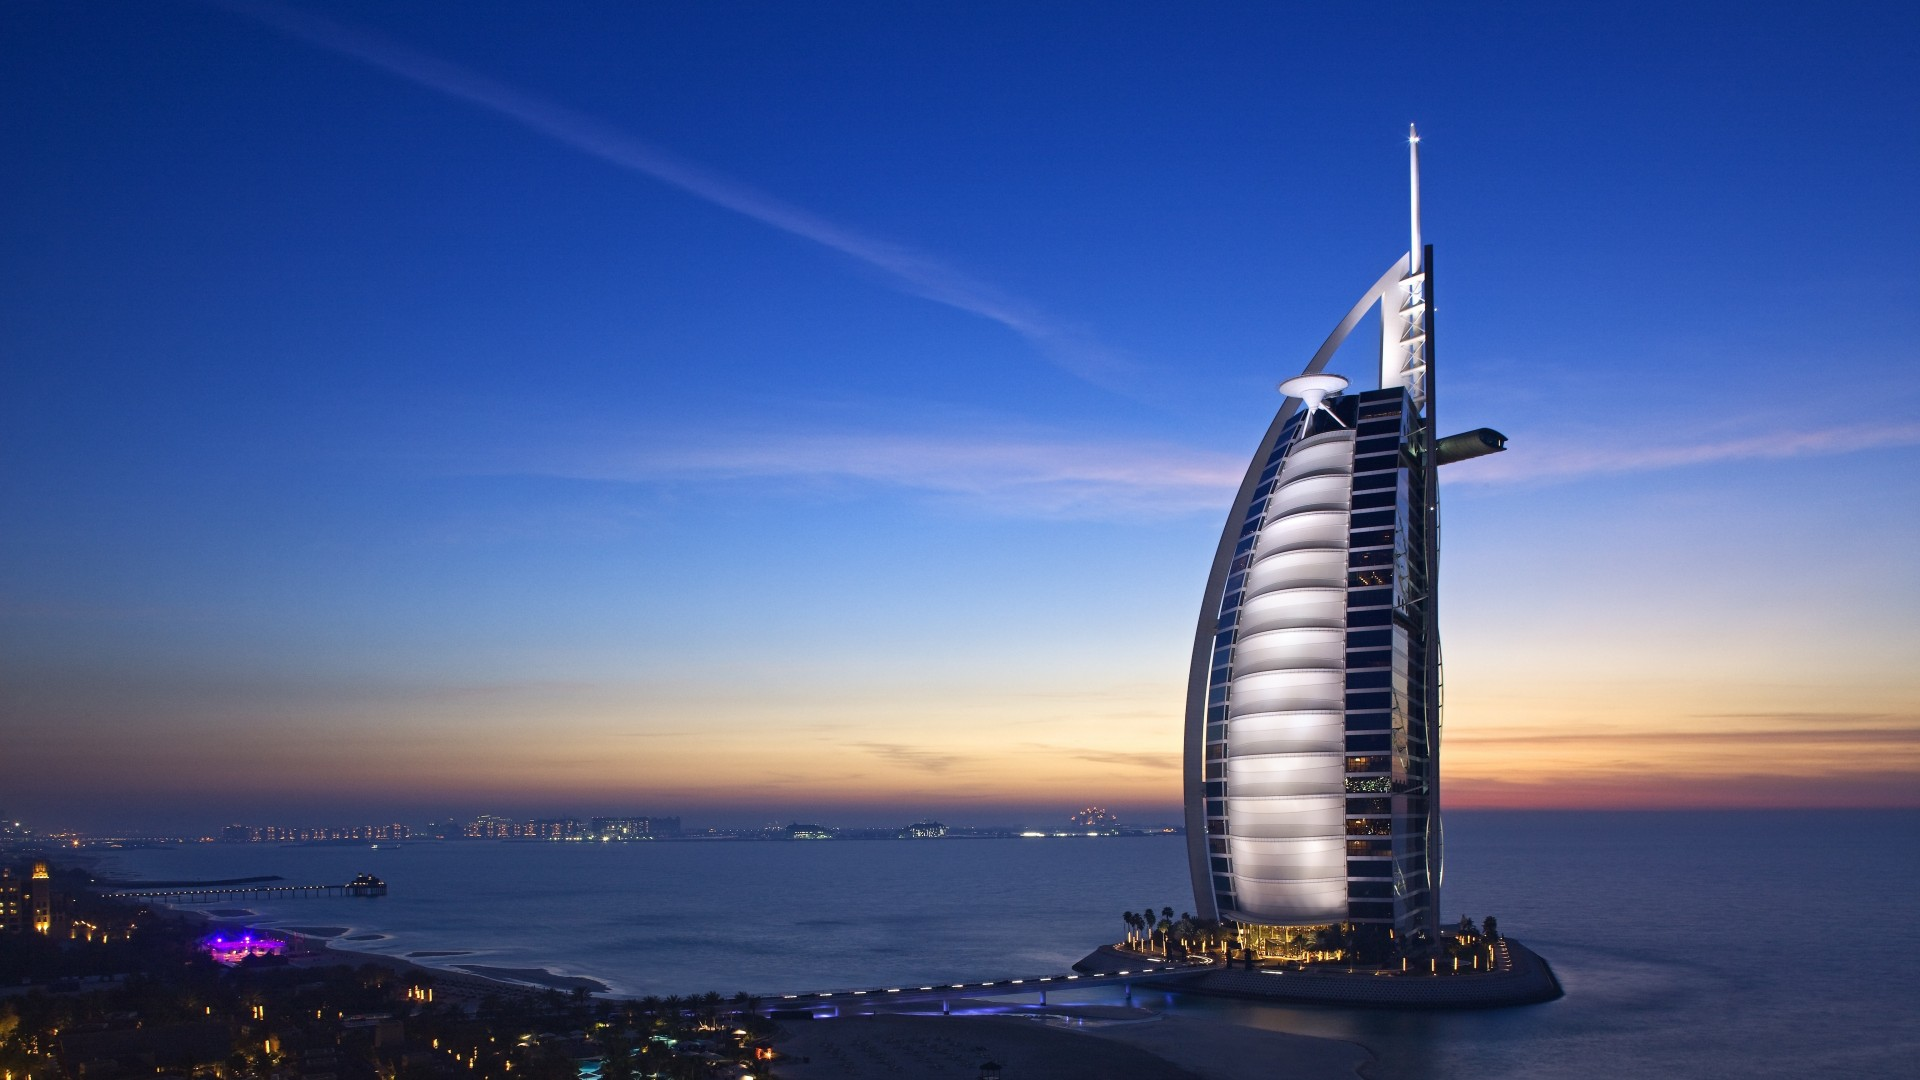 winning over the arab market hospitality Fraser suites dubai is designed to offer in front of the burj al arab, this attraction has over 30 rides for experience the award-winning frasers hospitality.